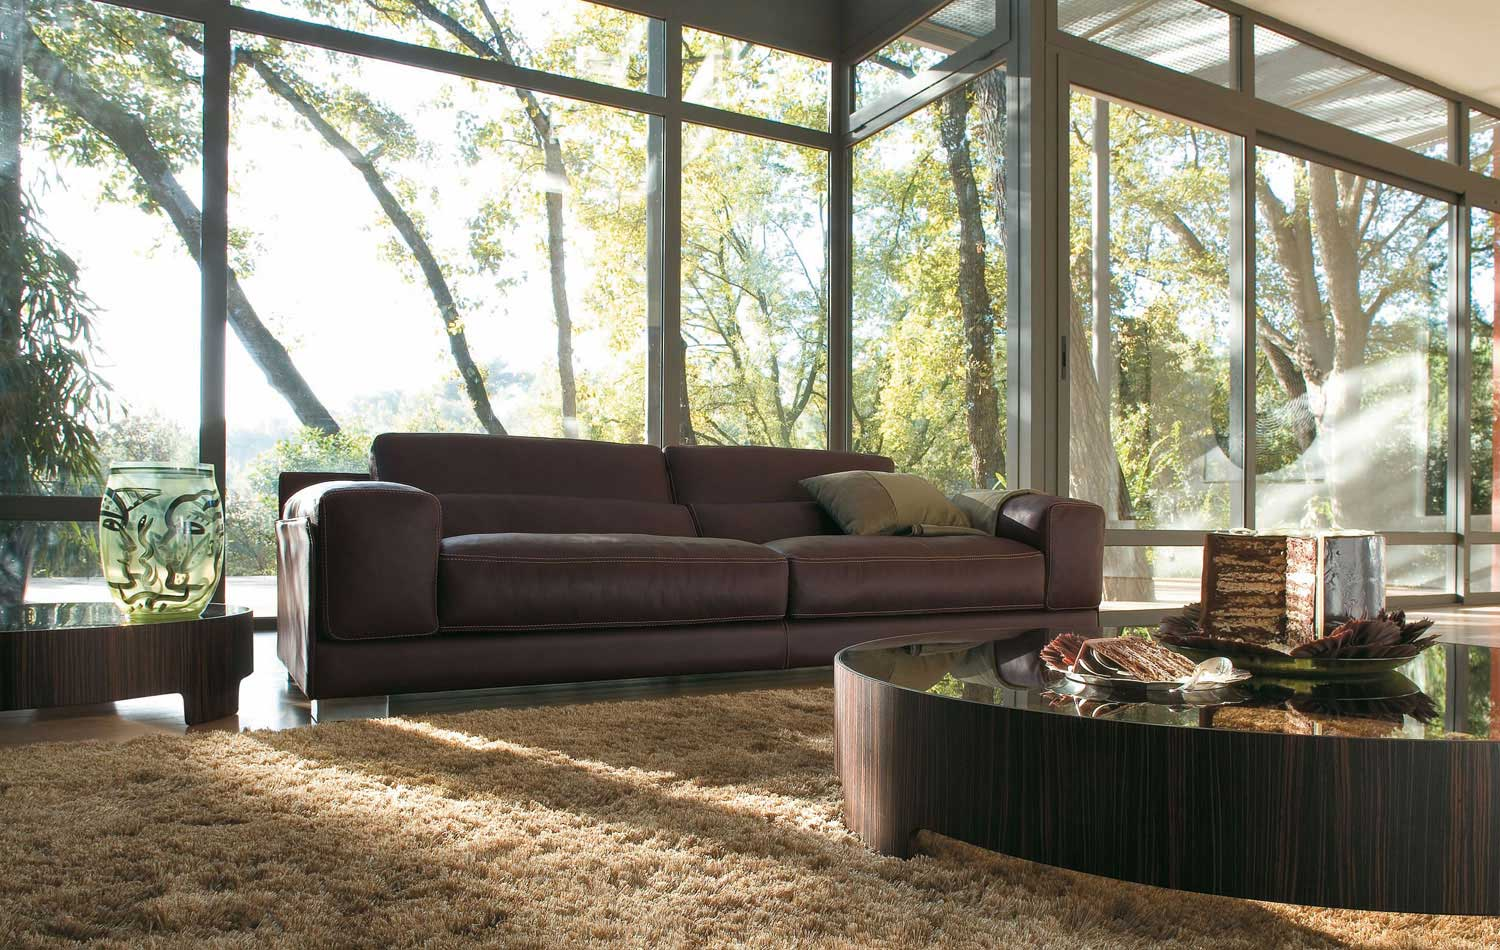 Teppich Couch Living Room Inspiration: 120 Modern Sofas By Roche Bobois ...